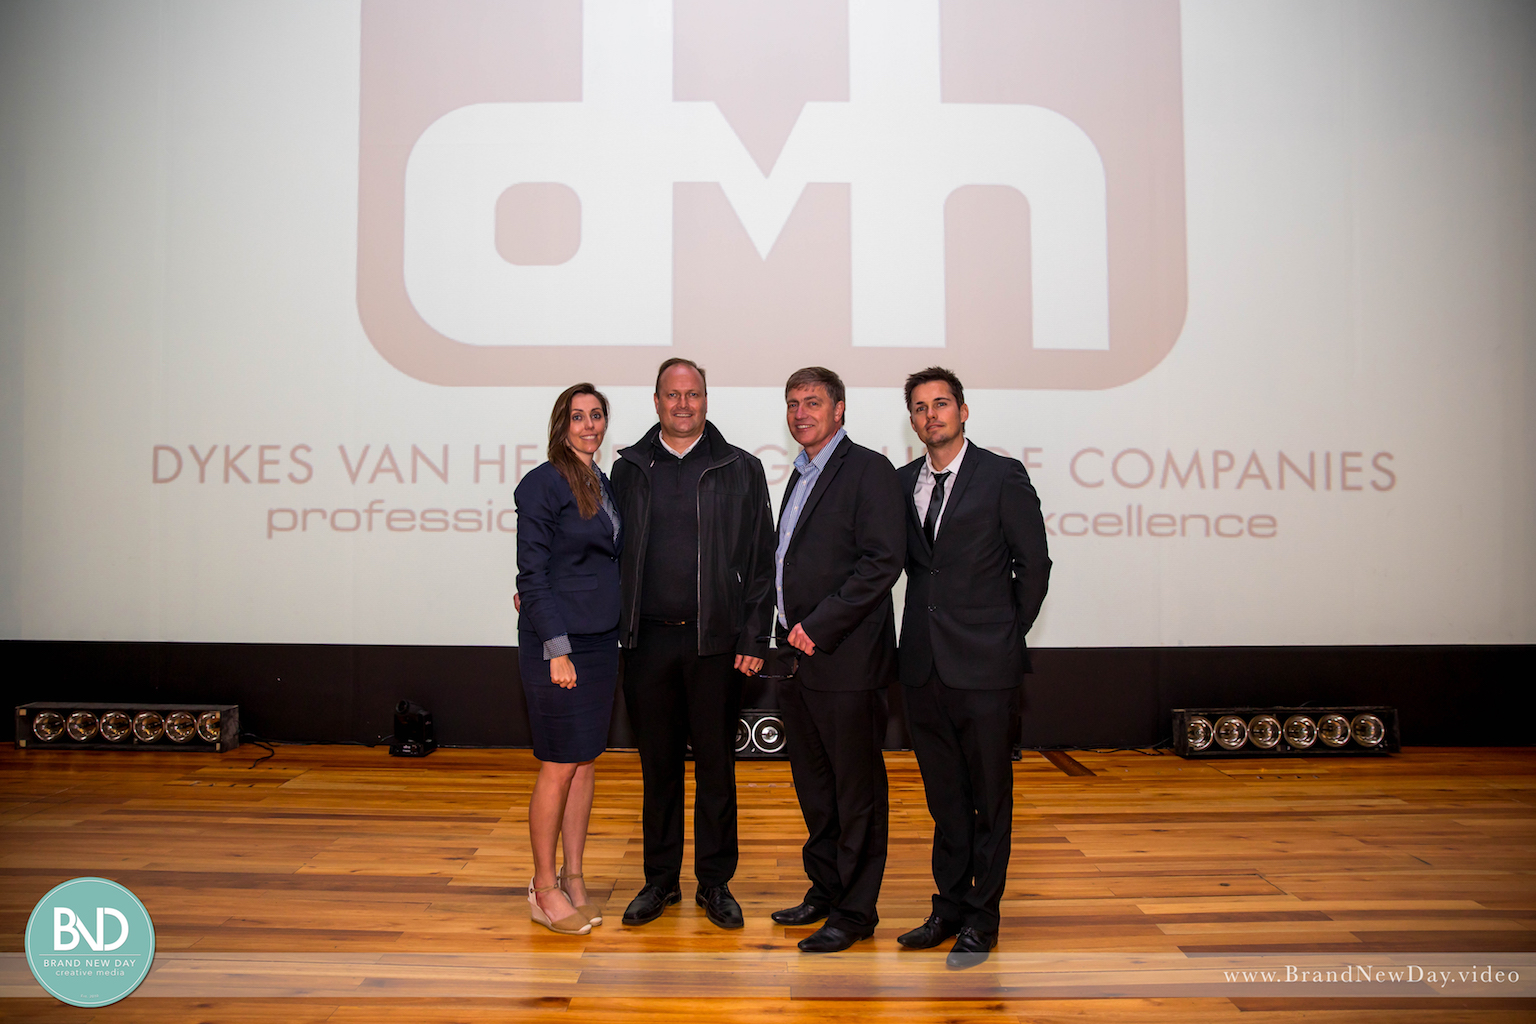 DVH Team at their recent roadshow.